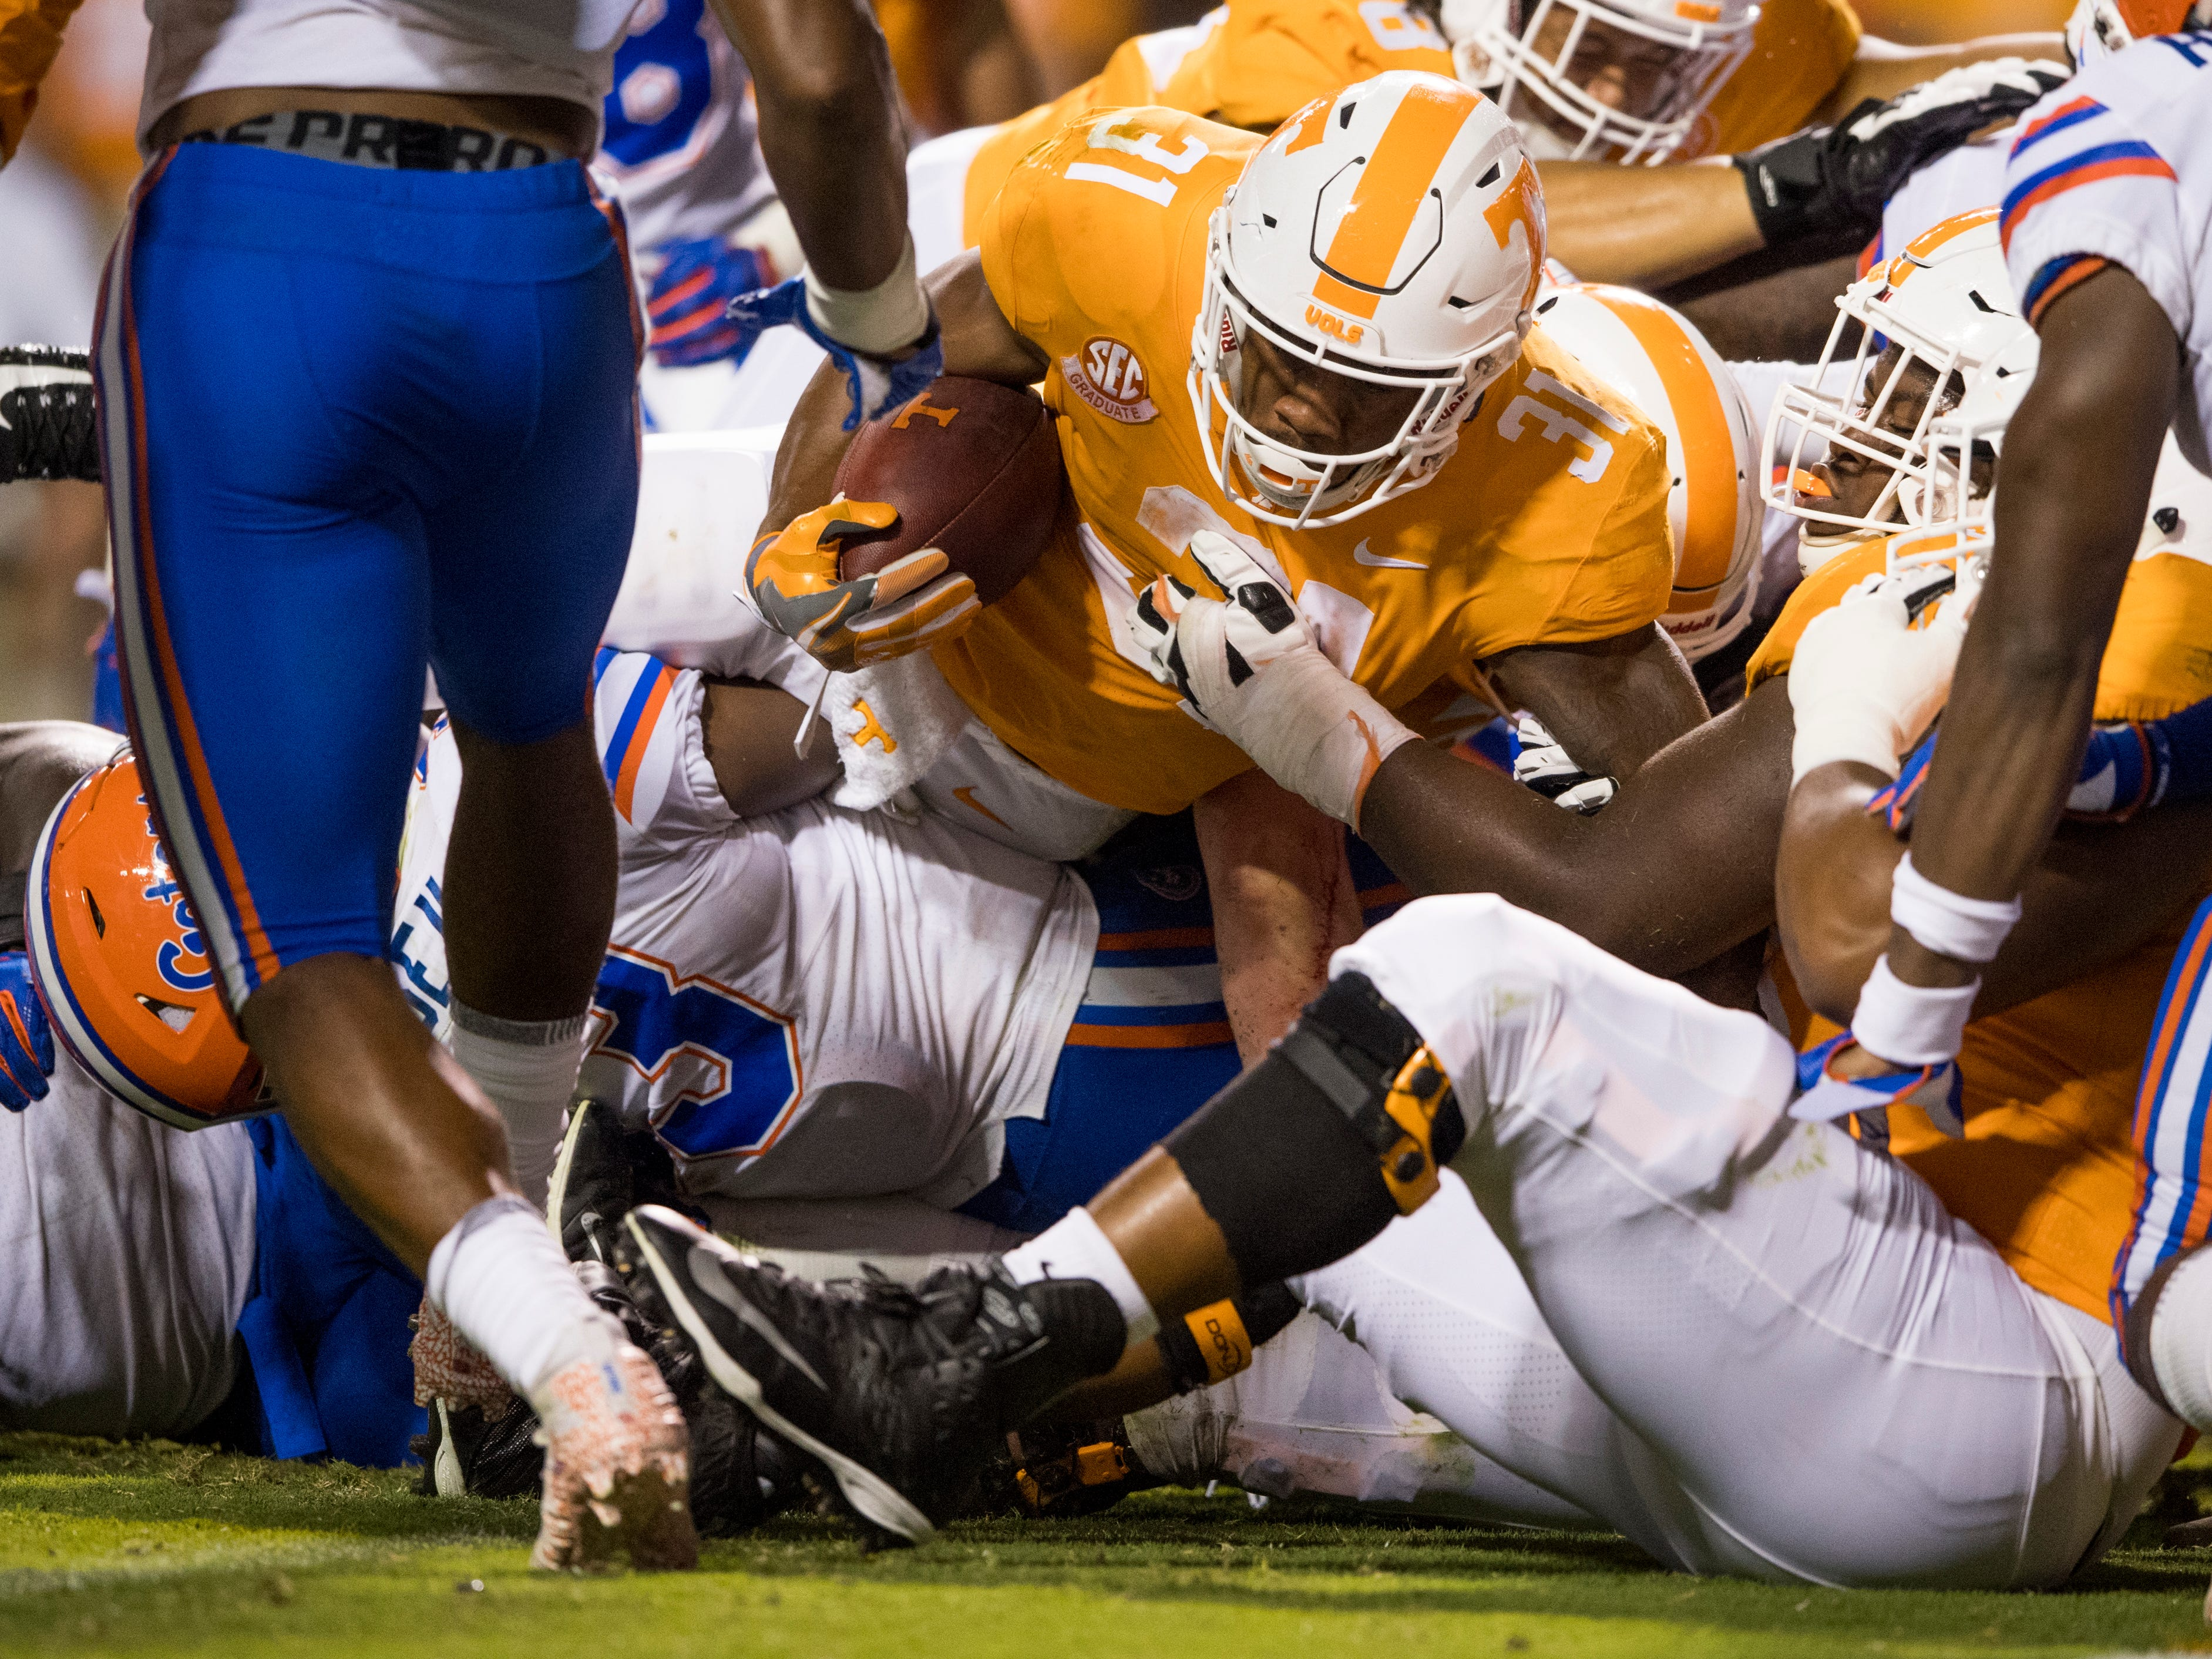 Tennessee running back Madre London (31) scores a touchdown during the Tennessee Volunteers' game against Florida in Neyland Stadium on Saturday, Sept. 22, 2018.